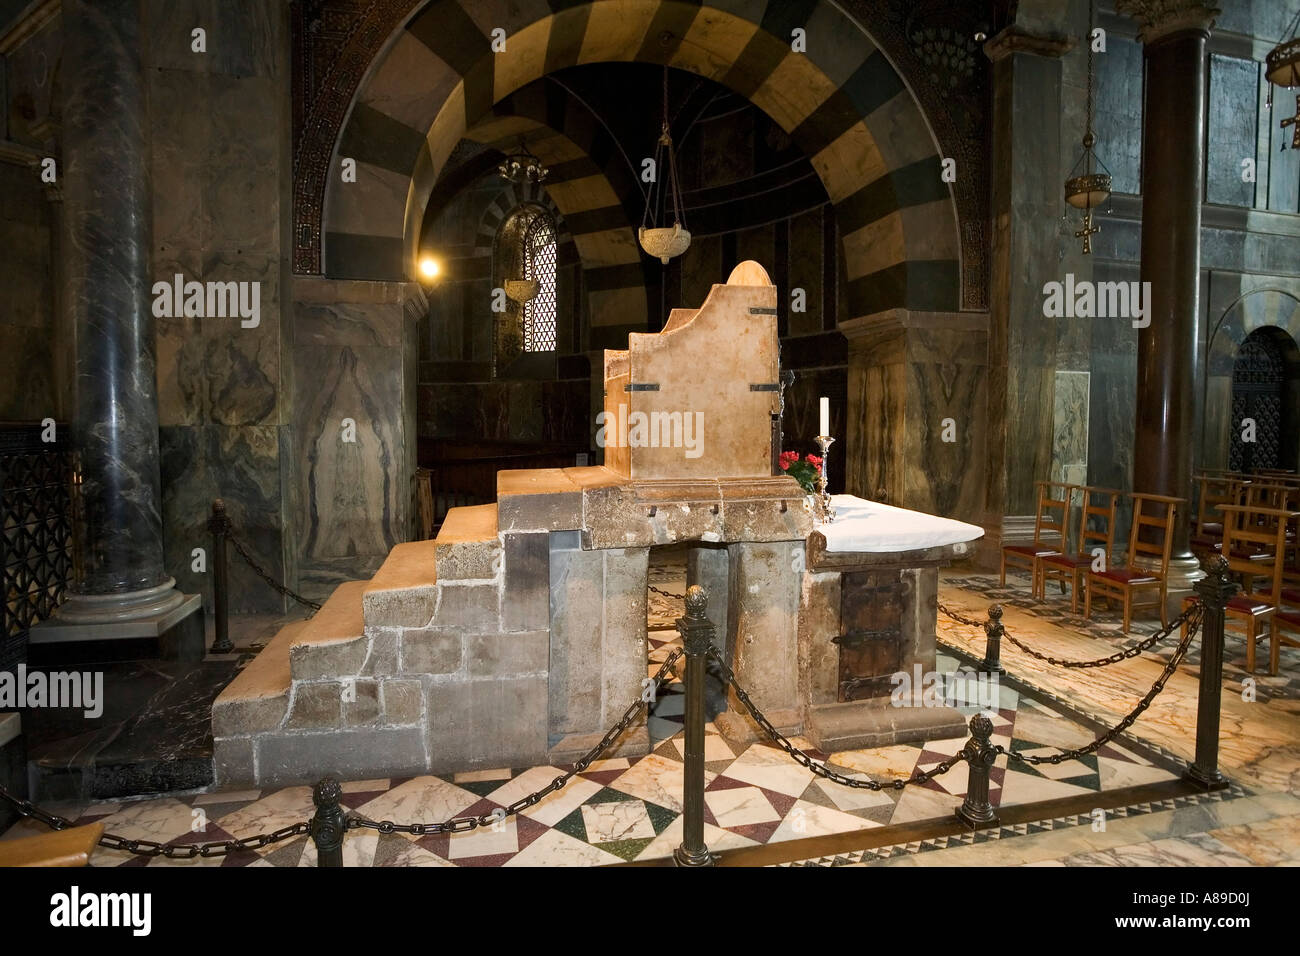 Aachen cathedral, throne of Charlemagne, Aachen, NRW, Germany - Stock Image